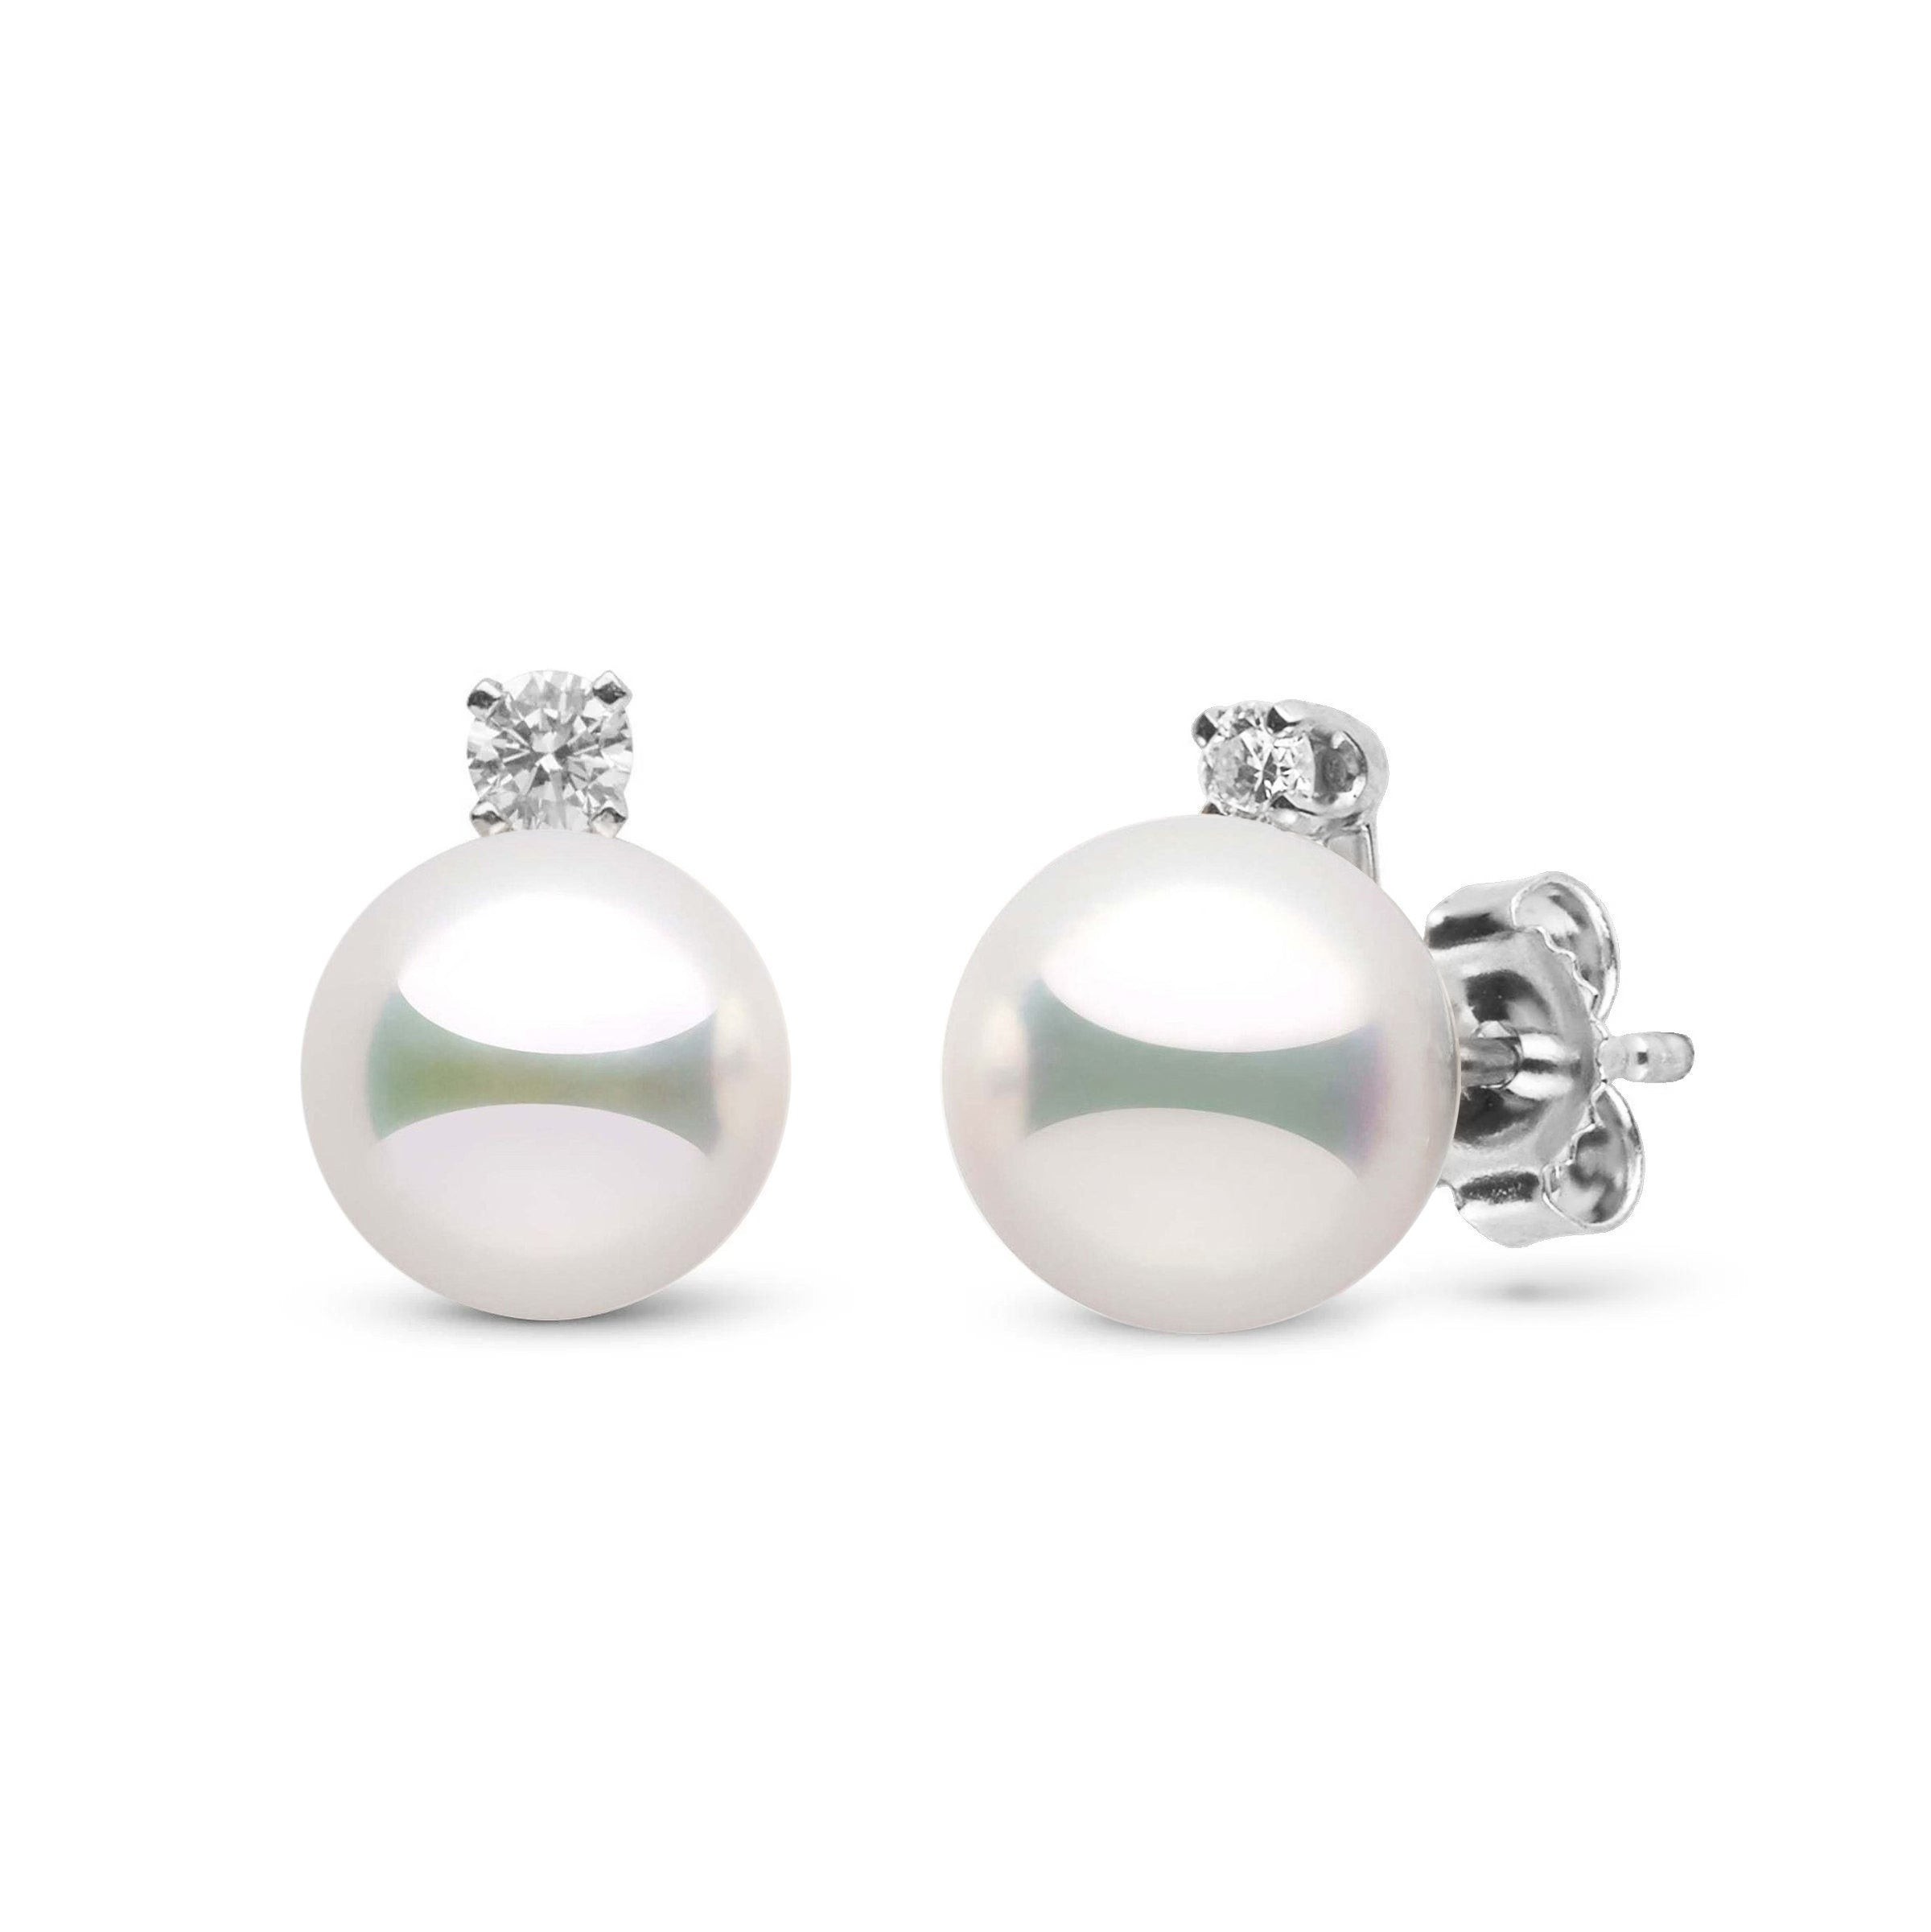 Starlight Collection 7.5-8.0 mm Natural White Hanadama Pearl and Diamond Stud Earrings